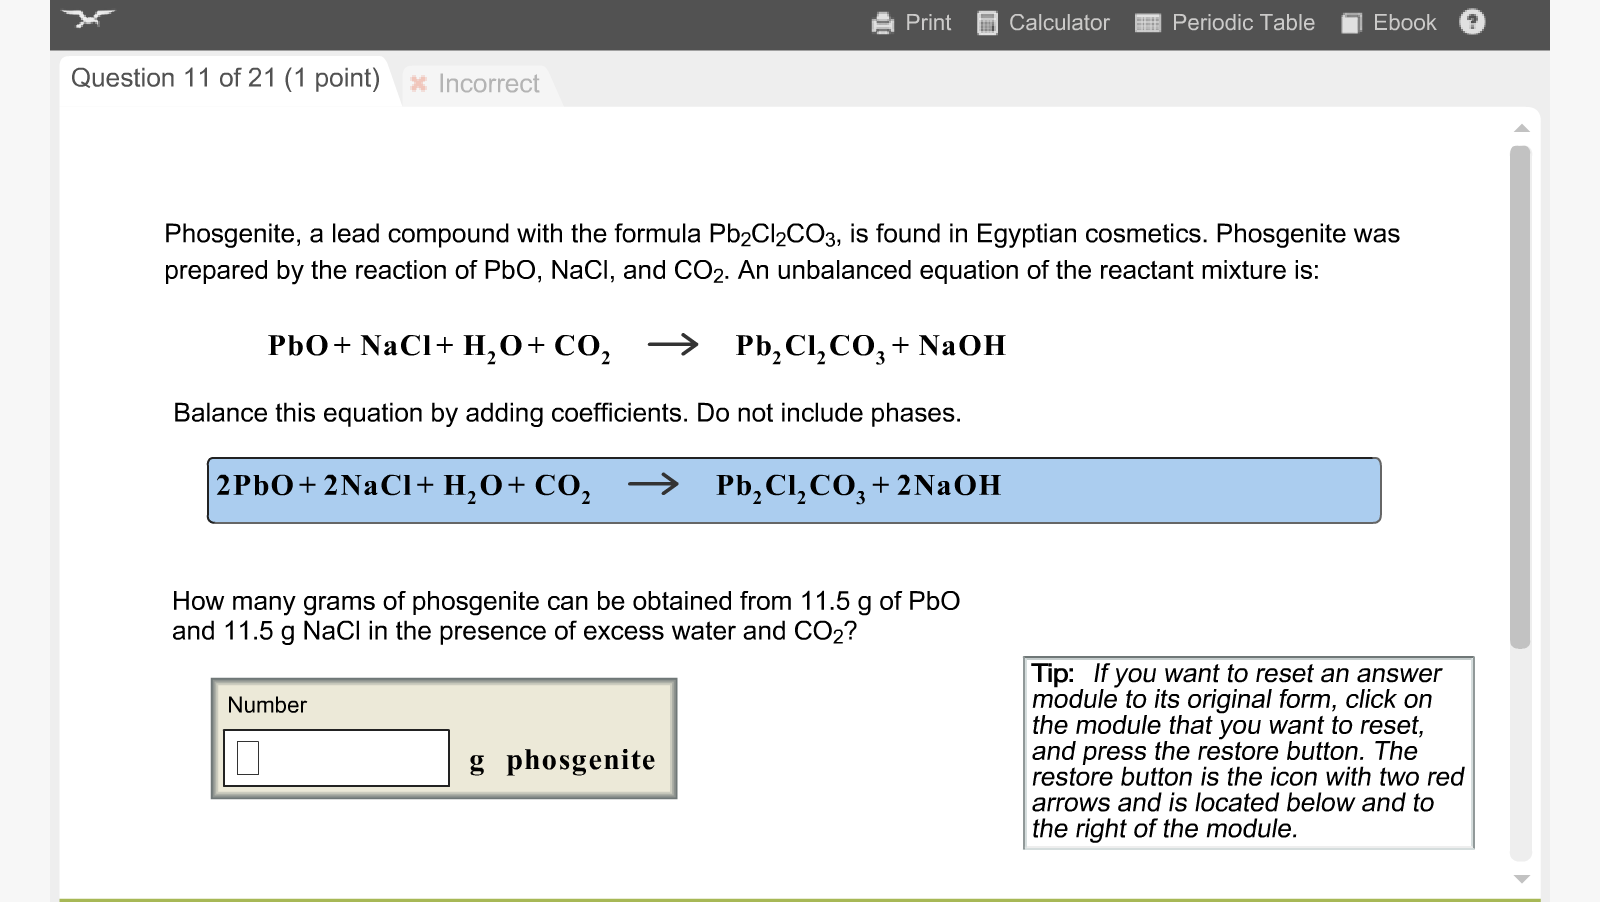 Phosgenite a lead compound with the formula pb2cl chegg print alculator periodic table ebook question 11 of 21 1 point x incorrect gamestrikefo Choice Image